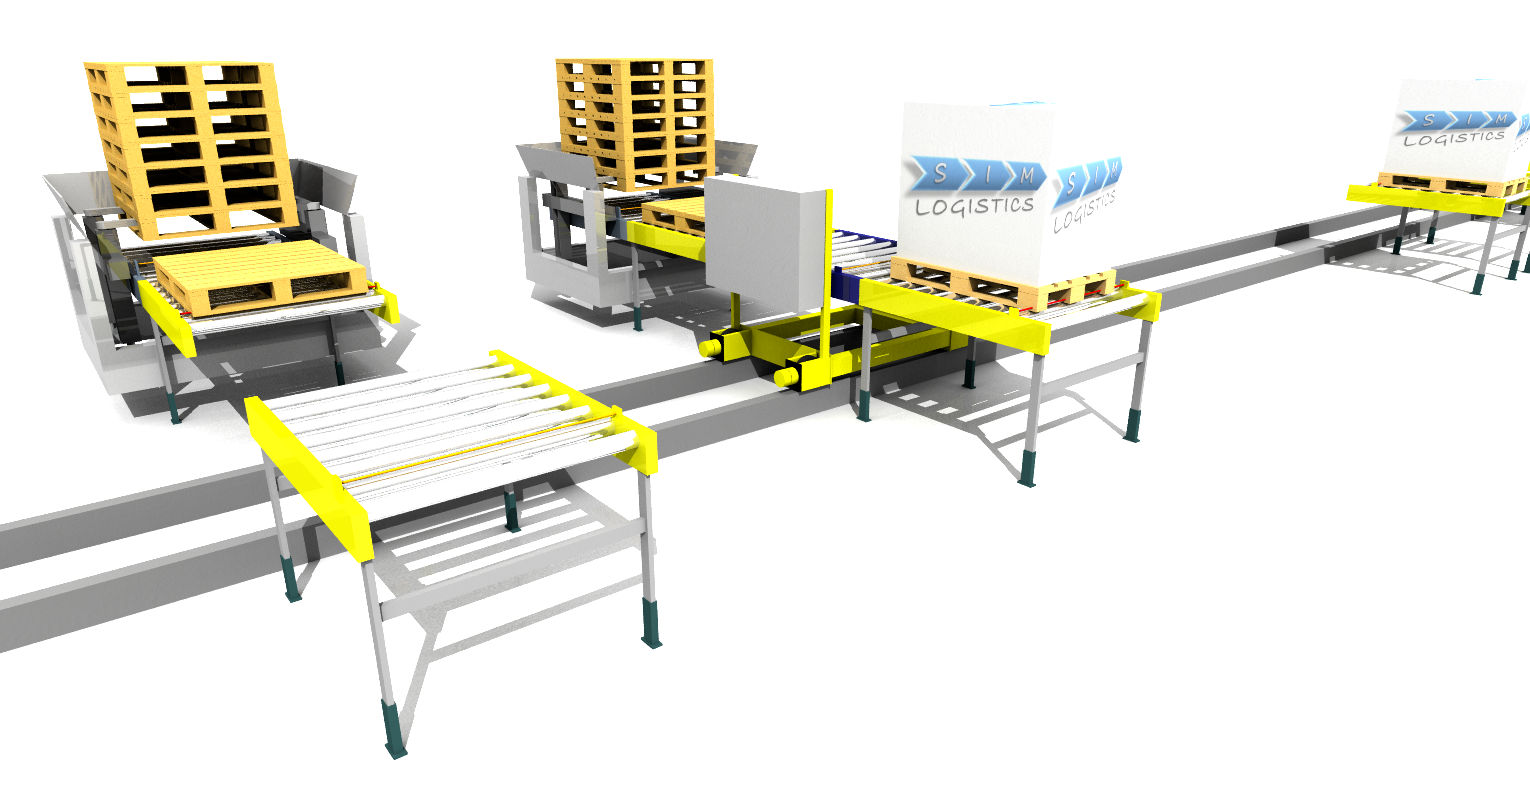 Sim Logistics - Transfer Vehicle And Pallet Stackers 2